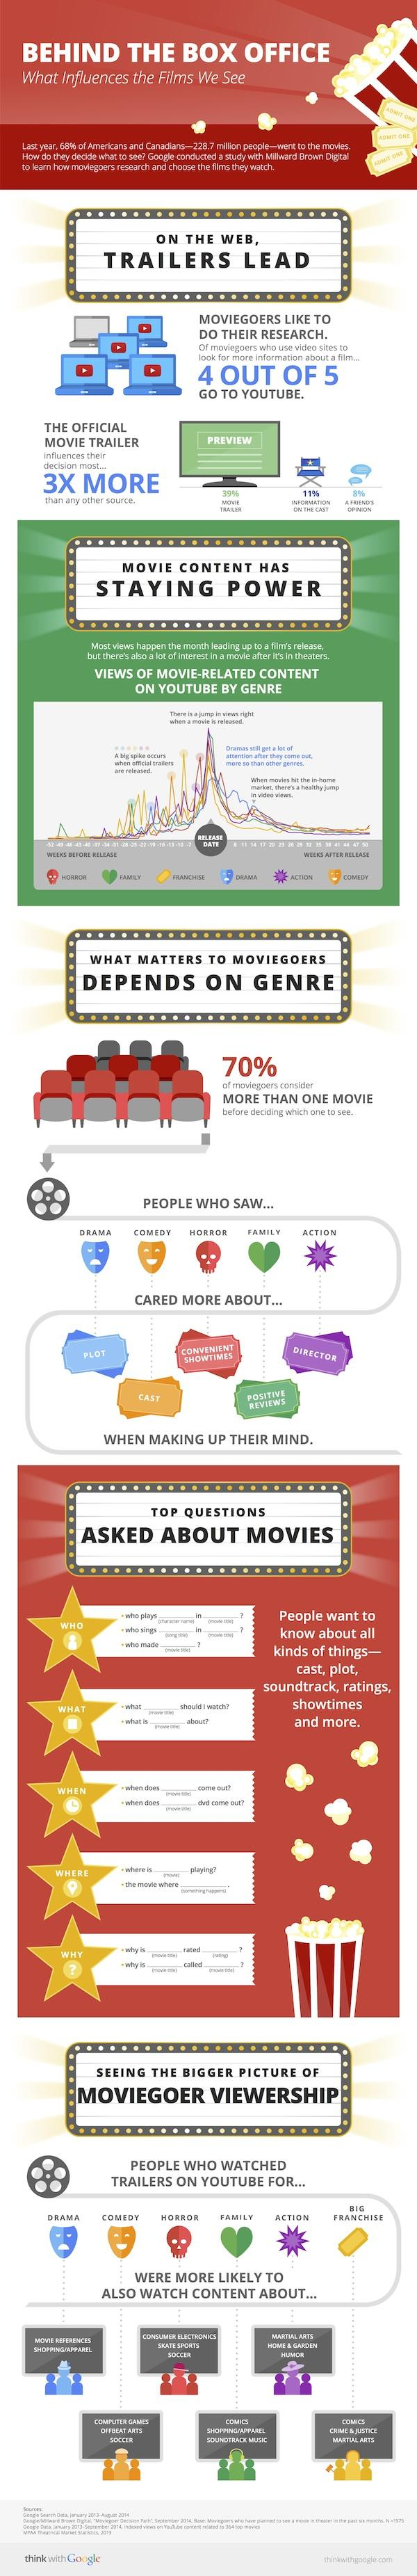 TWG_FilmGenre_Infographic_Round5_101514-lower